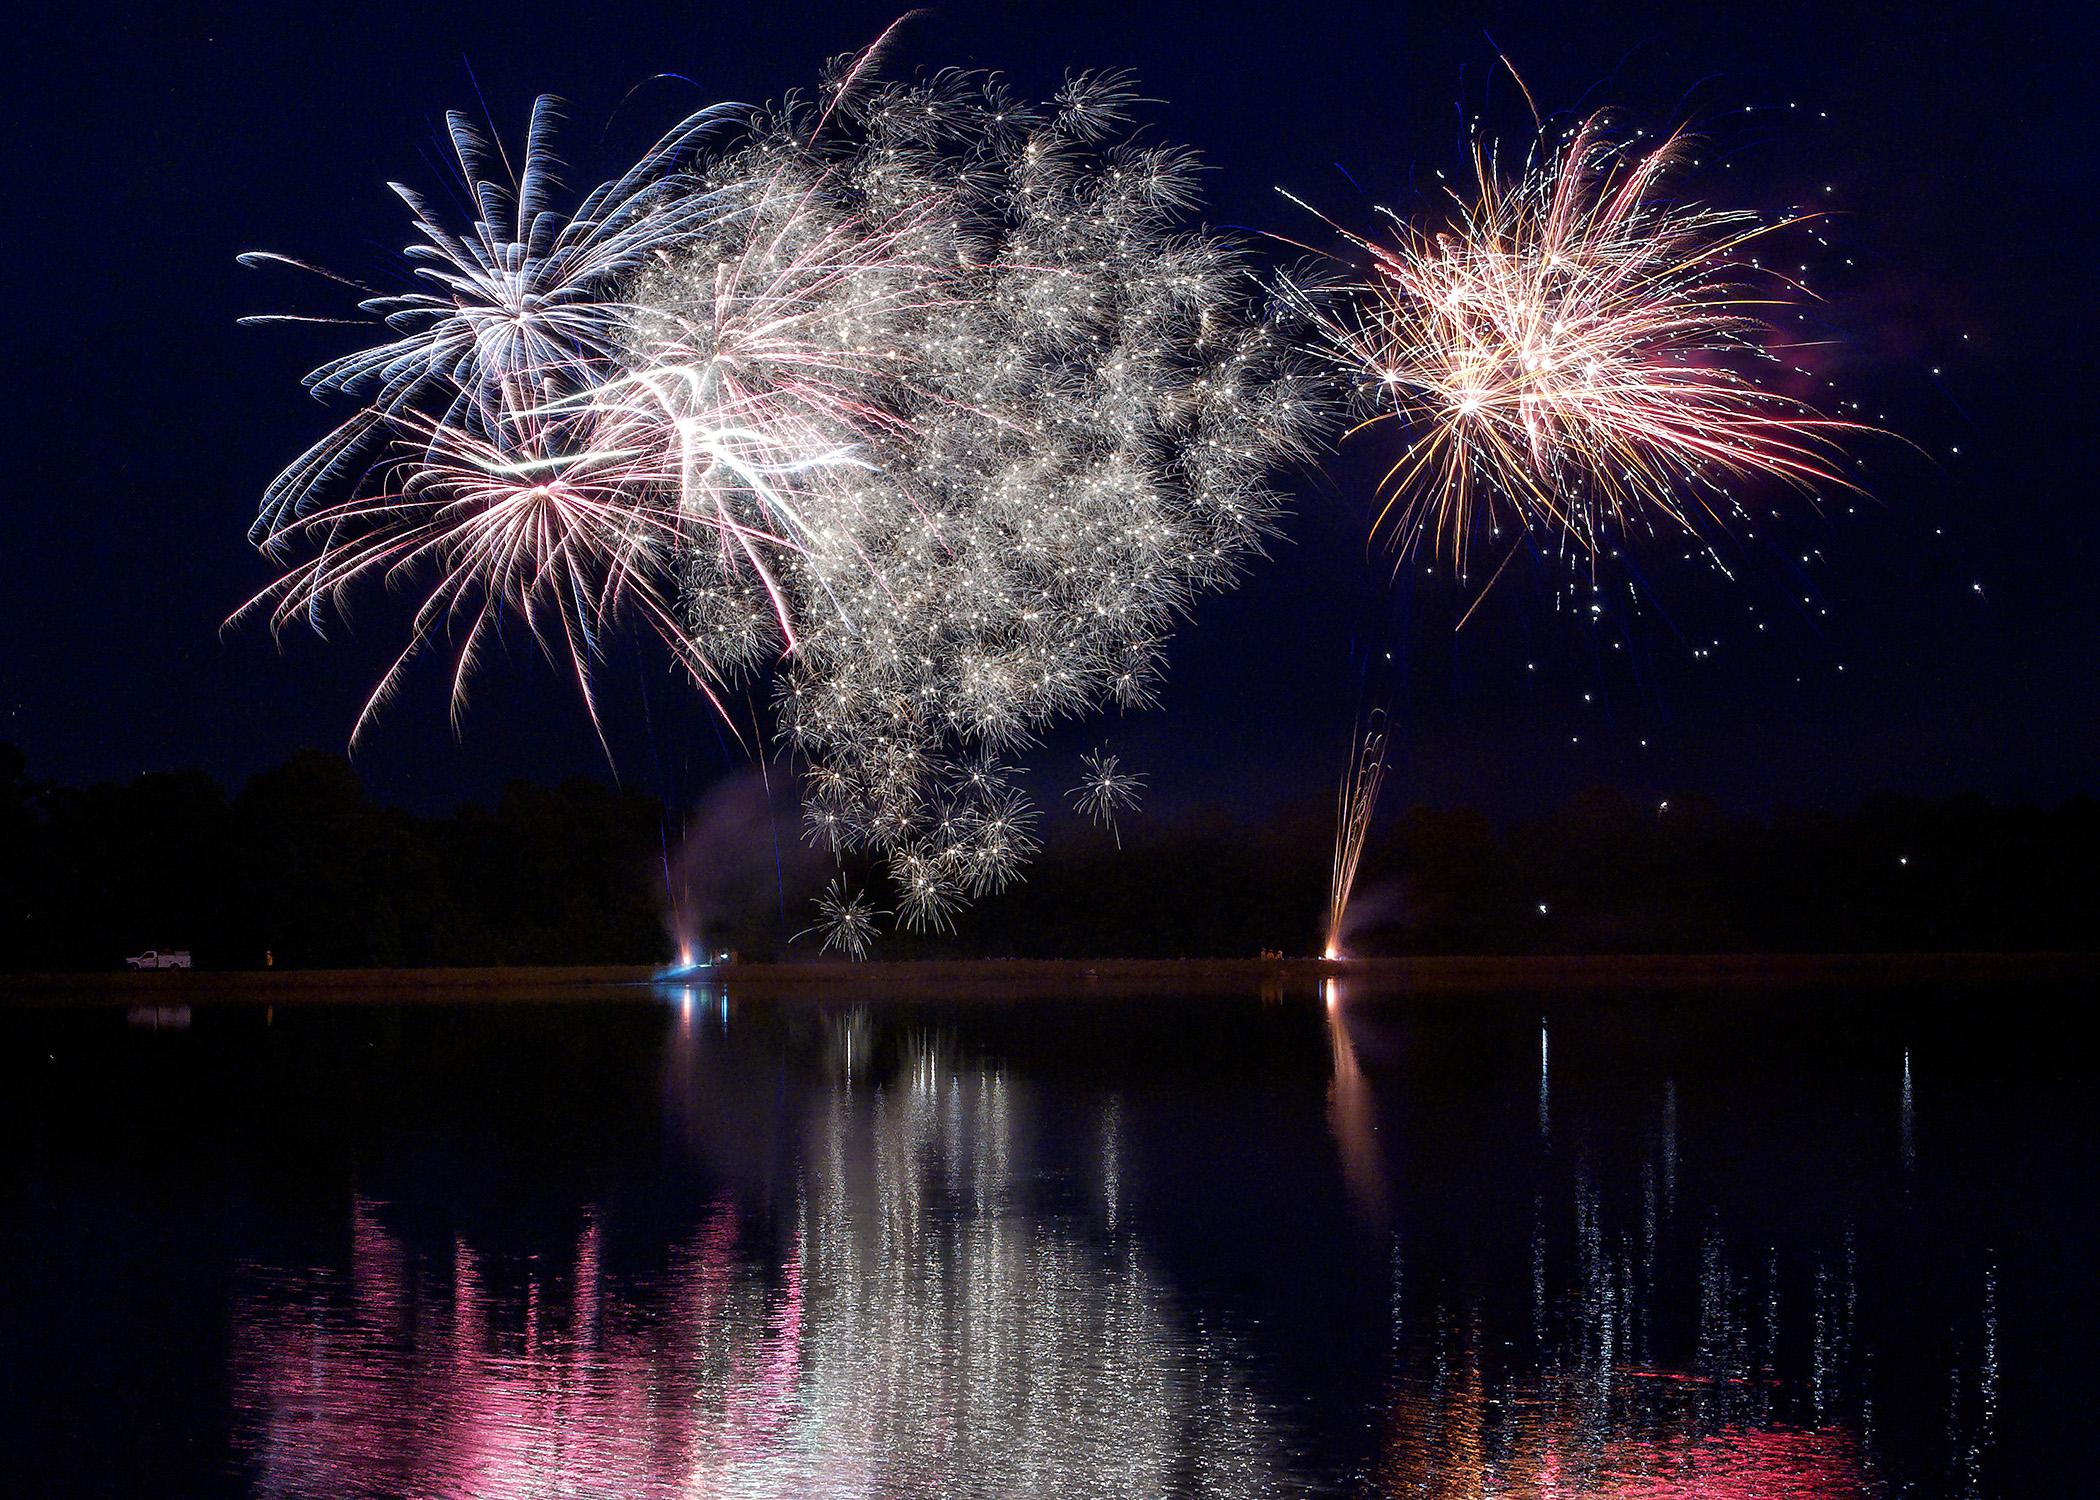 Setting off fireworks over a lake or pond away from houses decreases the risk of fires. (Photo by MSU Ag Communications/Kevin Hudson)